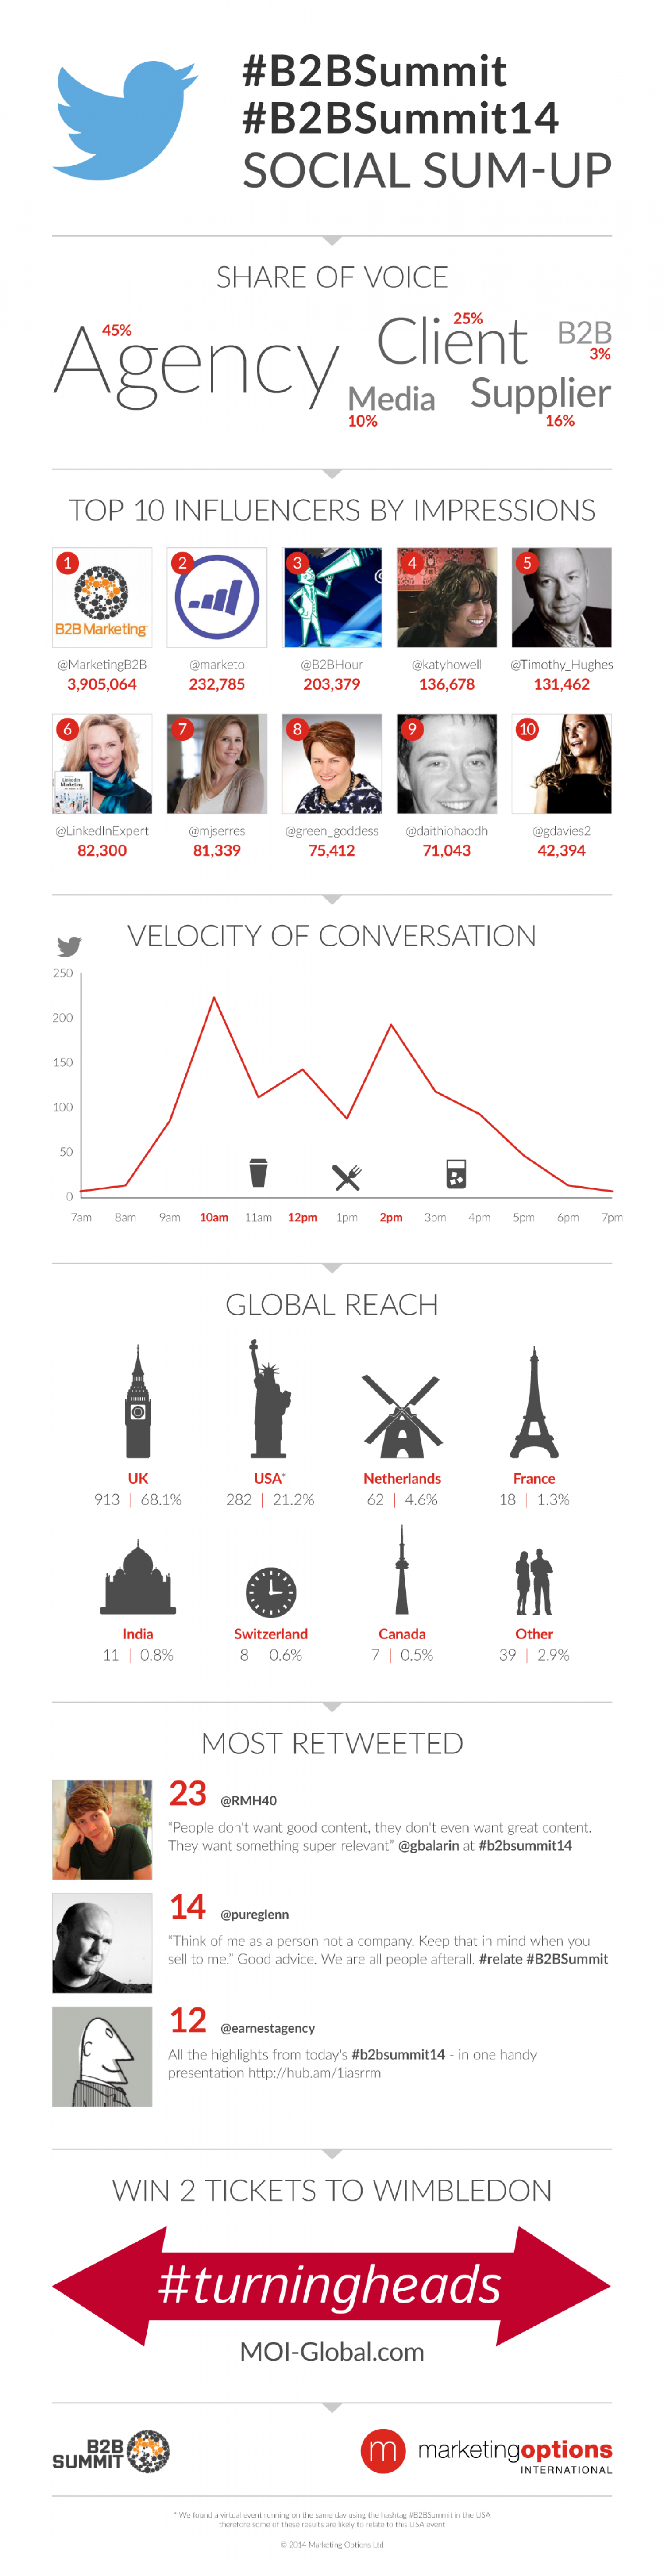 #B2BSummit14 Social Sum-Up  Infographic